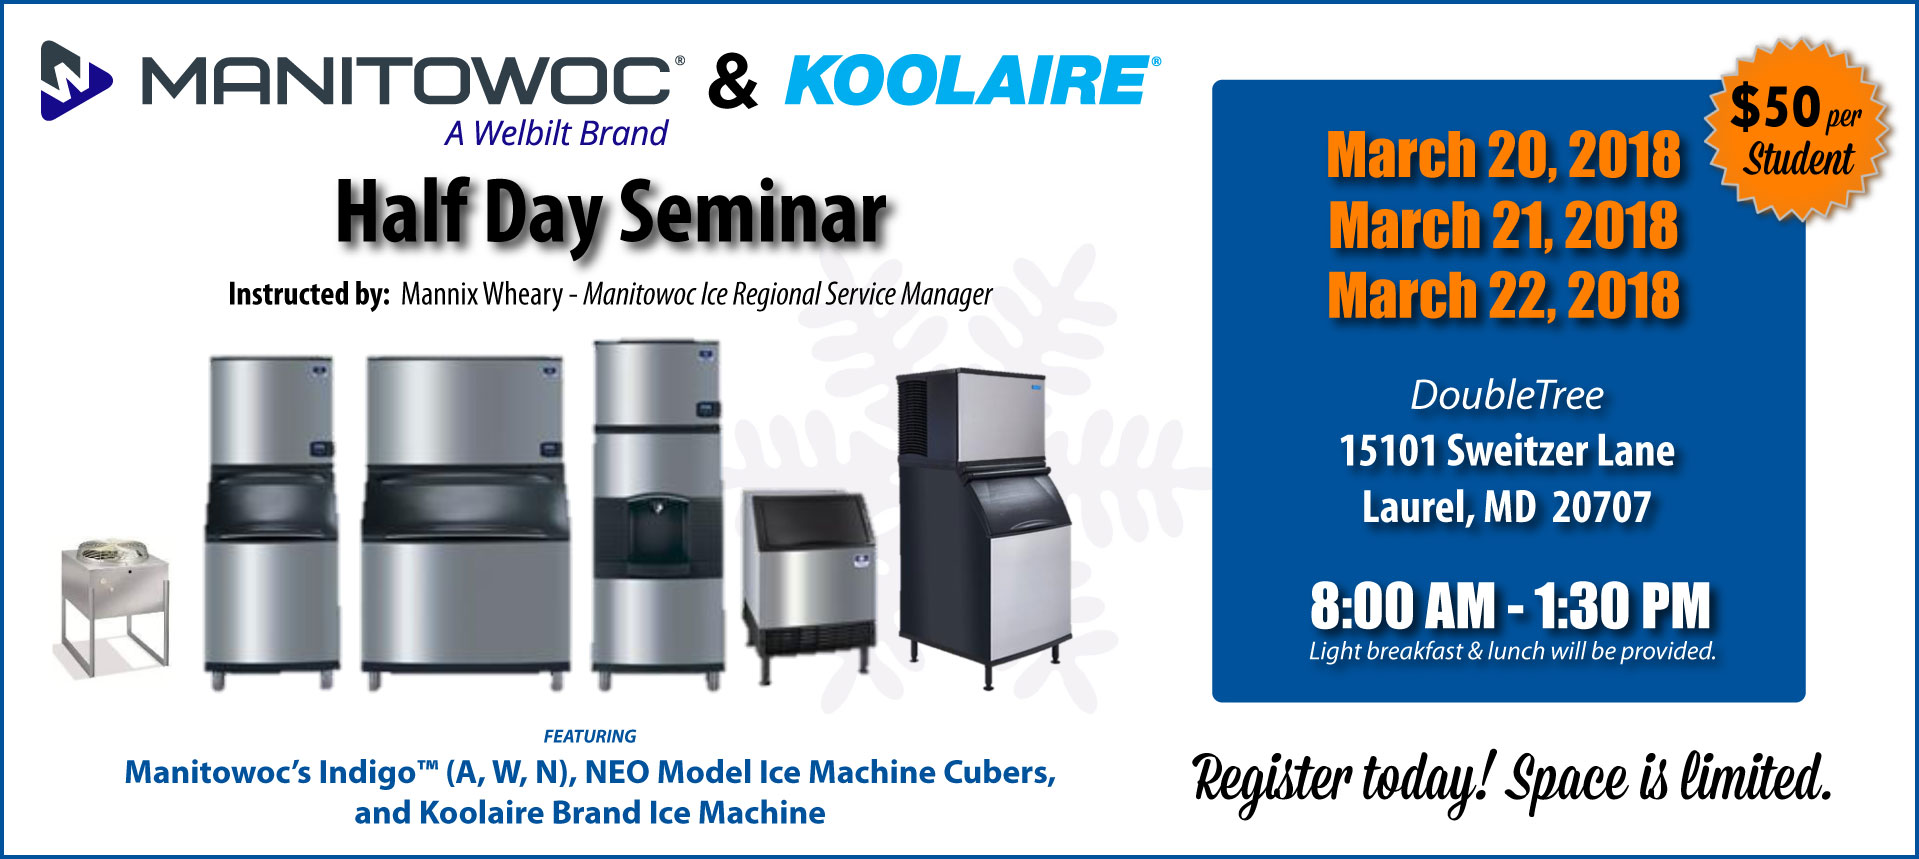 Manitowoc & Koolaire Half-Day Seminar (March 21,  2018)